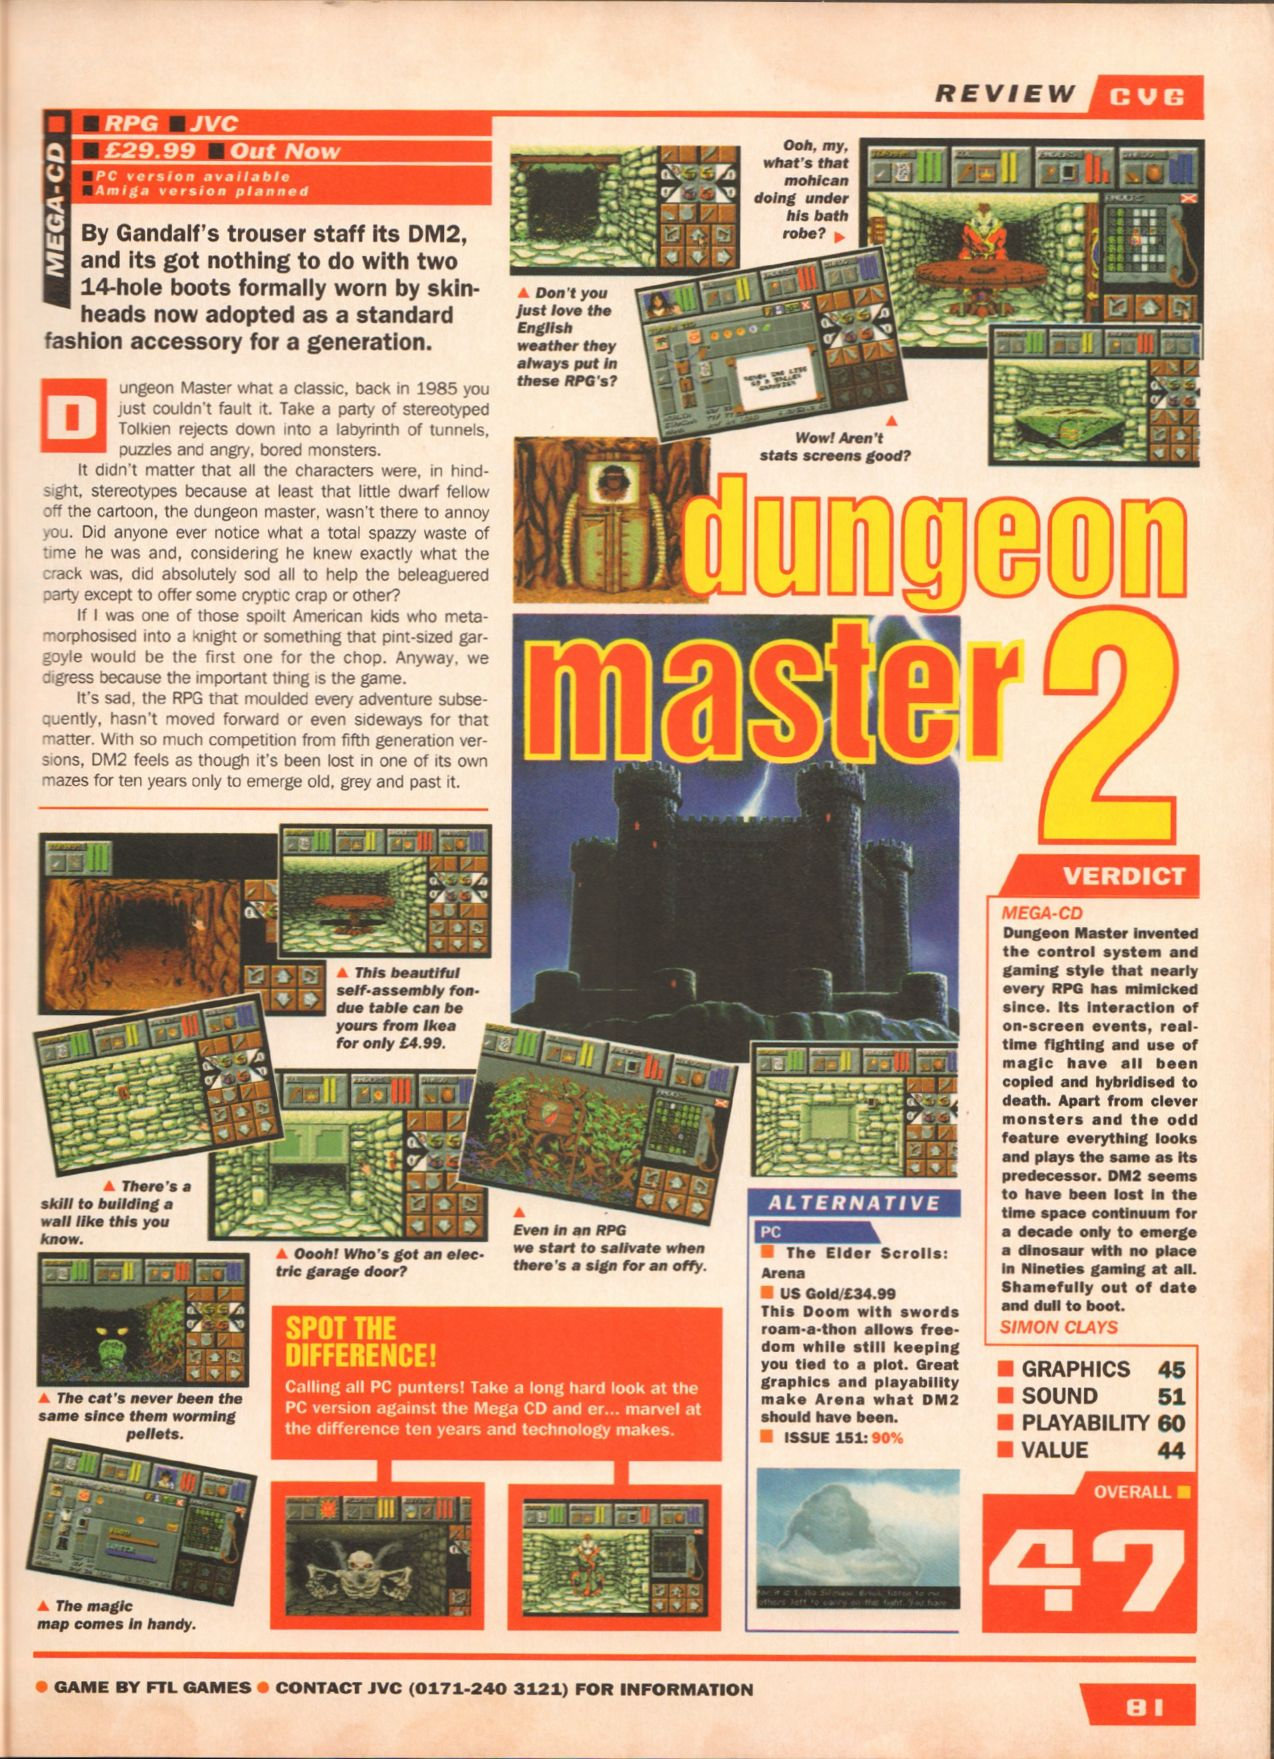 Dungeon Master II for Mega CD Review published in British magazine 'Computer And Video Games', Issue #164 July 1995, Page 81